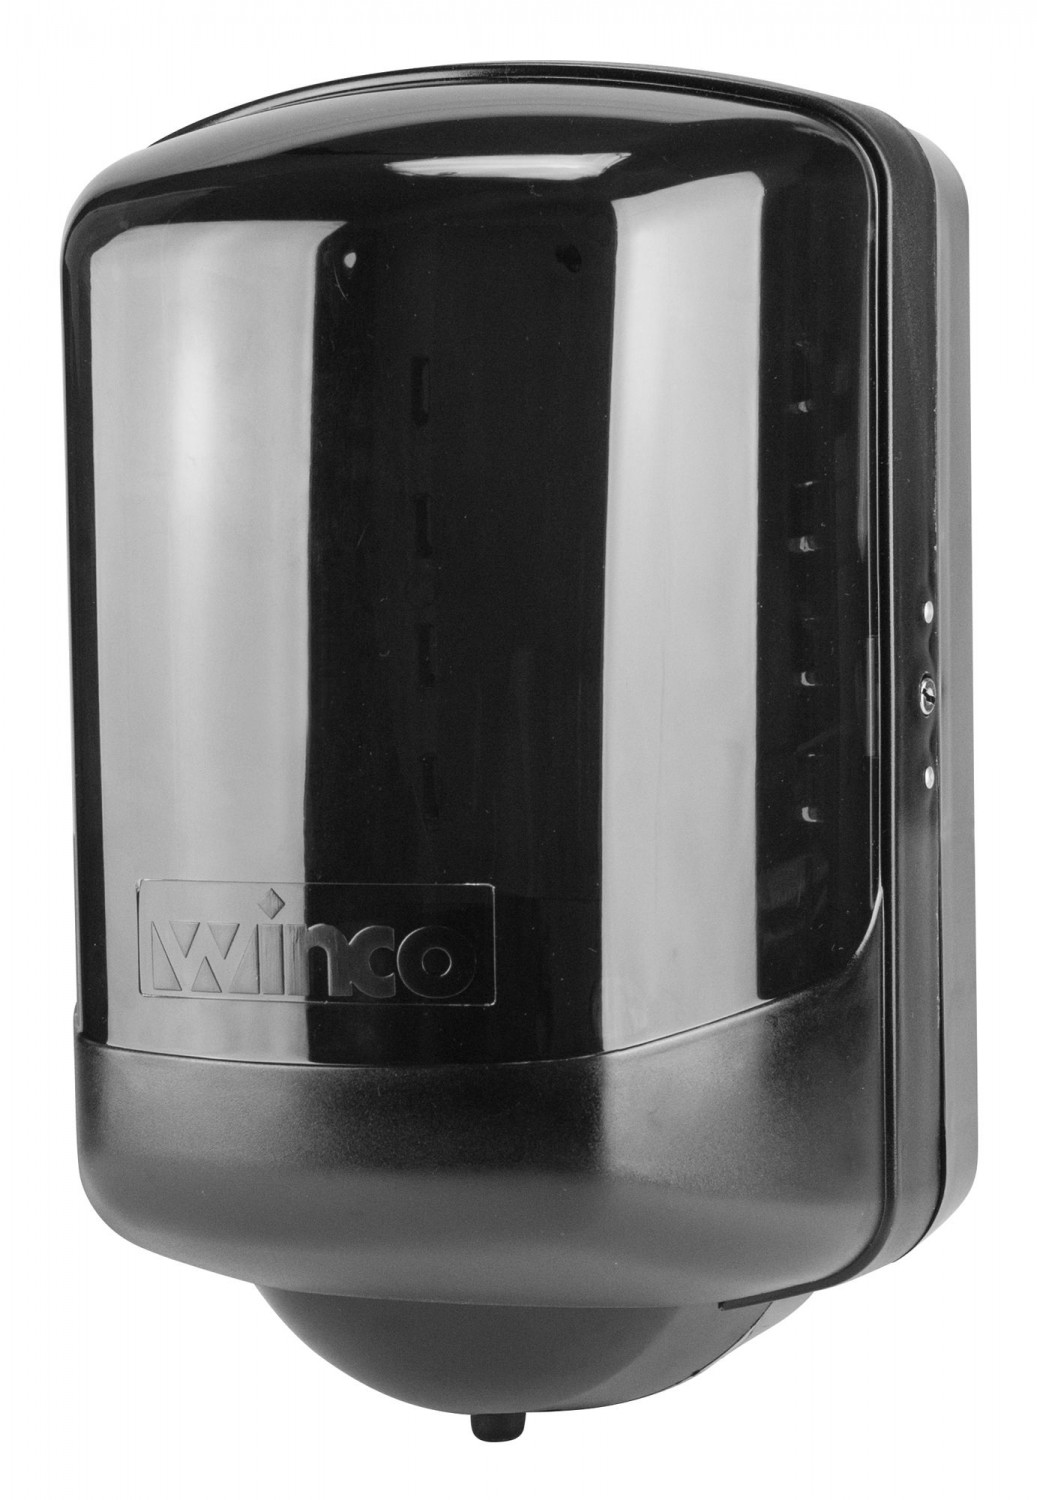 Winco TD-330 Center Pull Paper Towel Dispenser